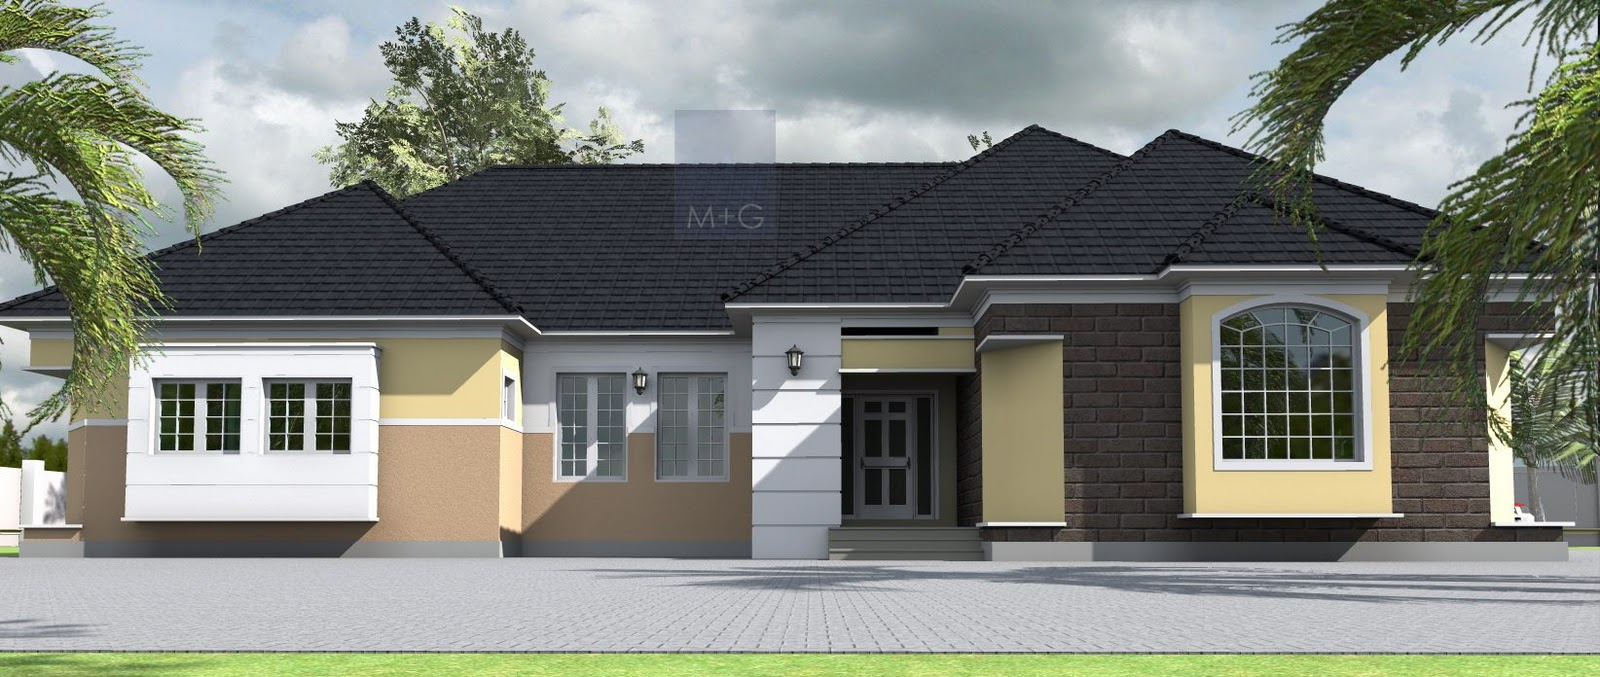 House plans and design architectural designs for 4 for Nigerian home designs photos